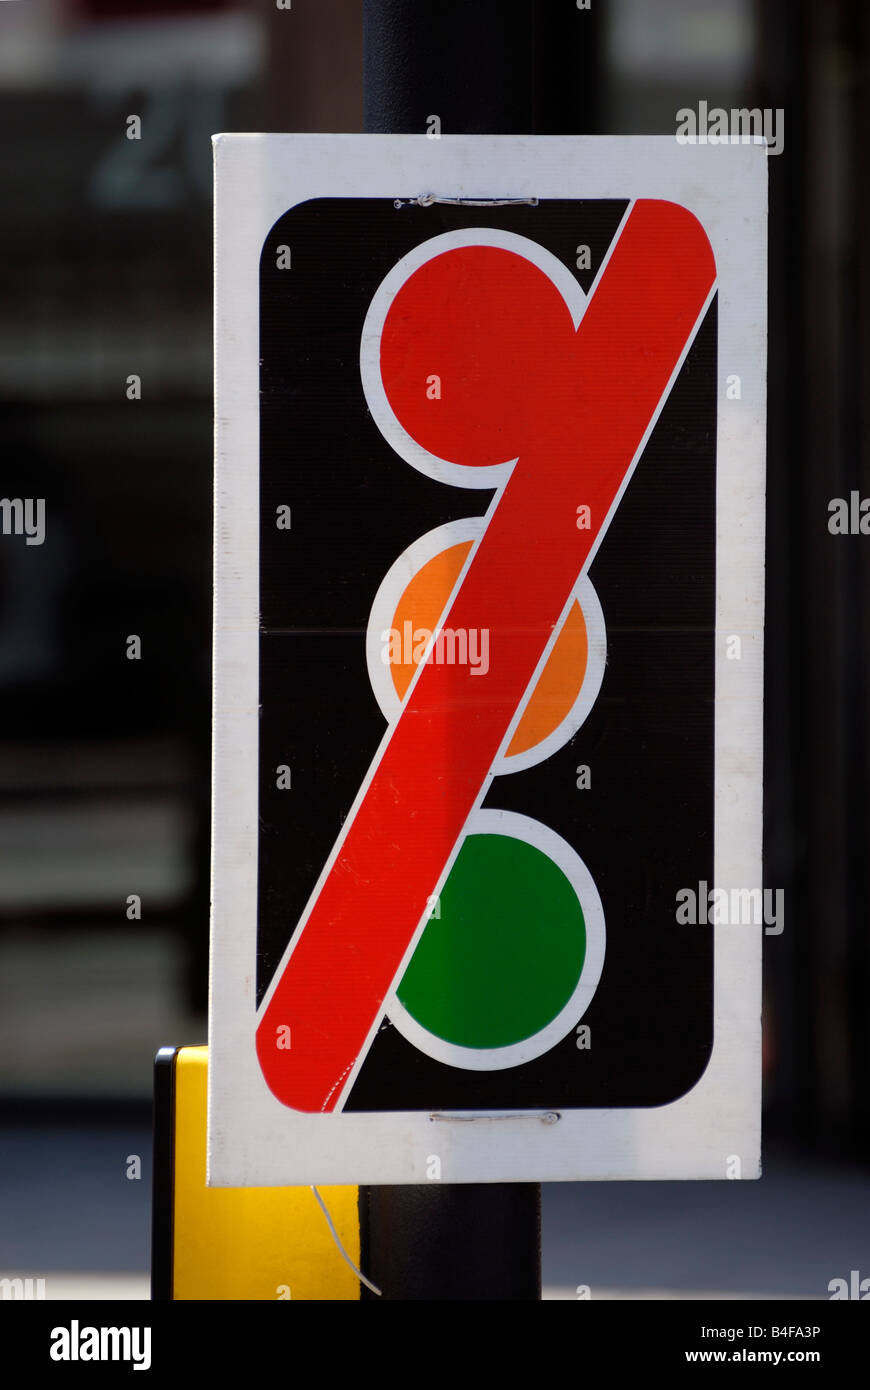 Traffic lights out of order sign - Stock Image